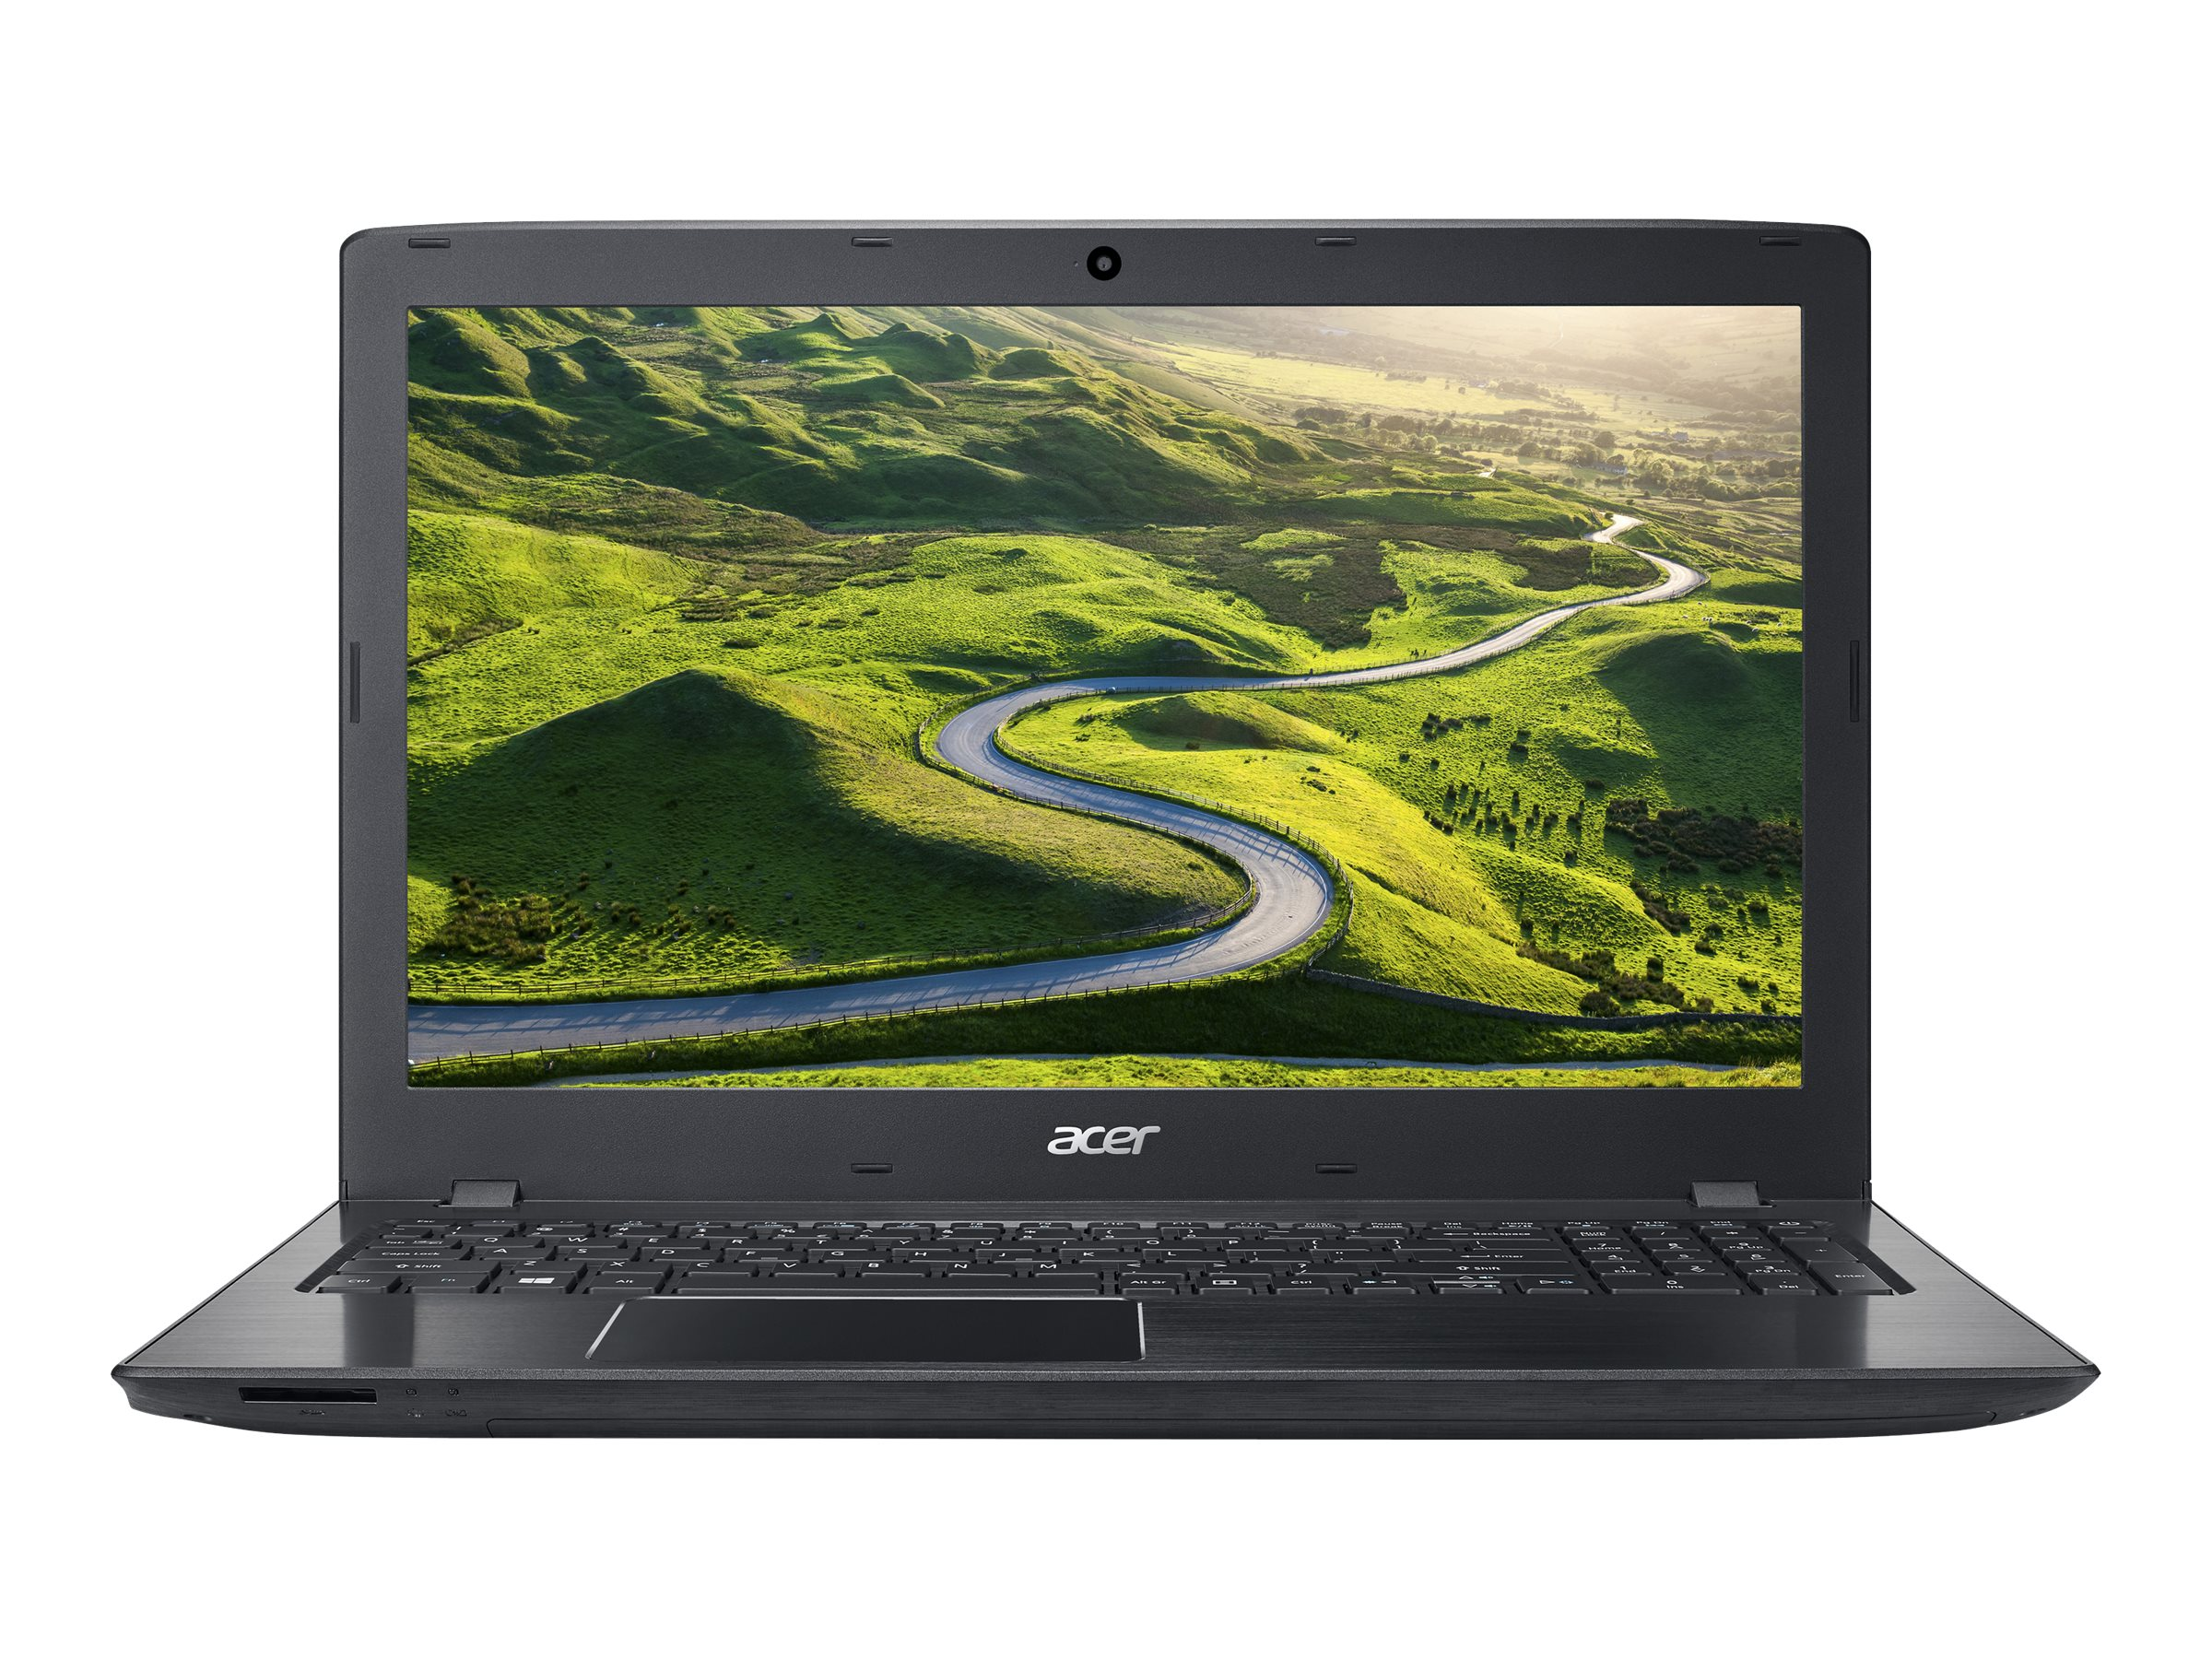 Acer Aspire E5-553-T2XN 2.4GHz A10 Series 15.6in display